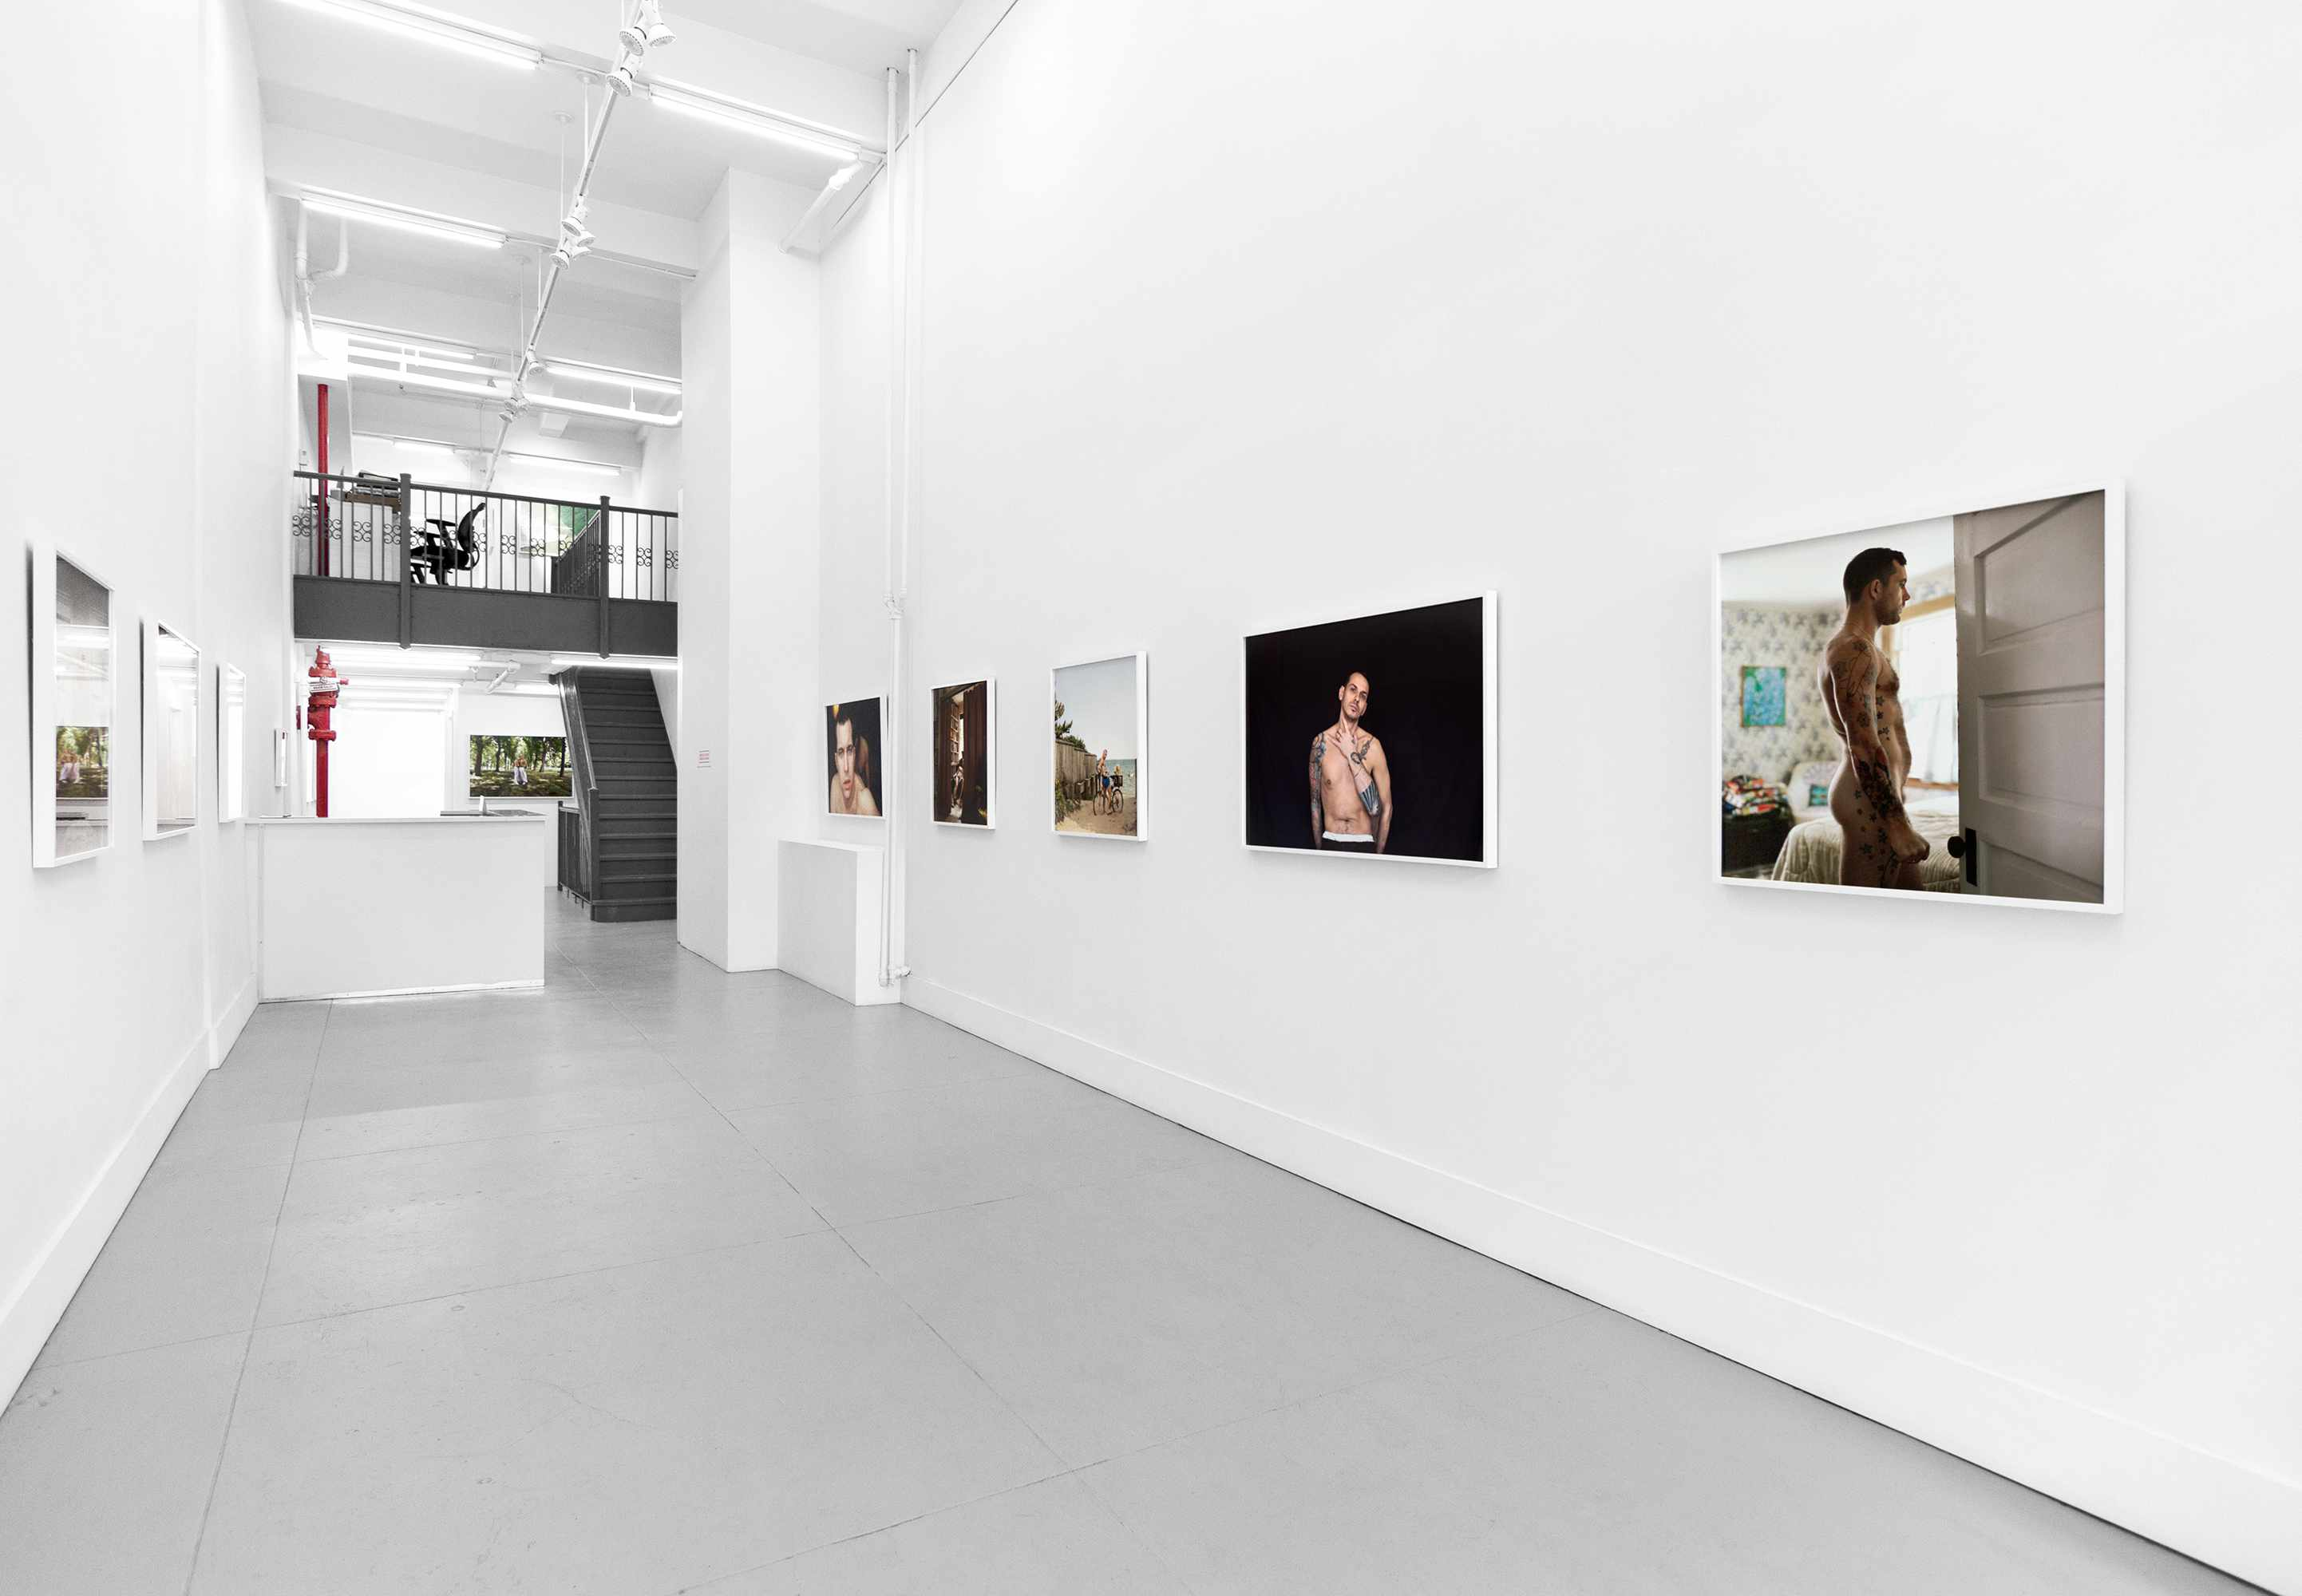 white gallery walls with pictures of a tattooed man on them